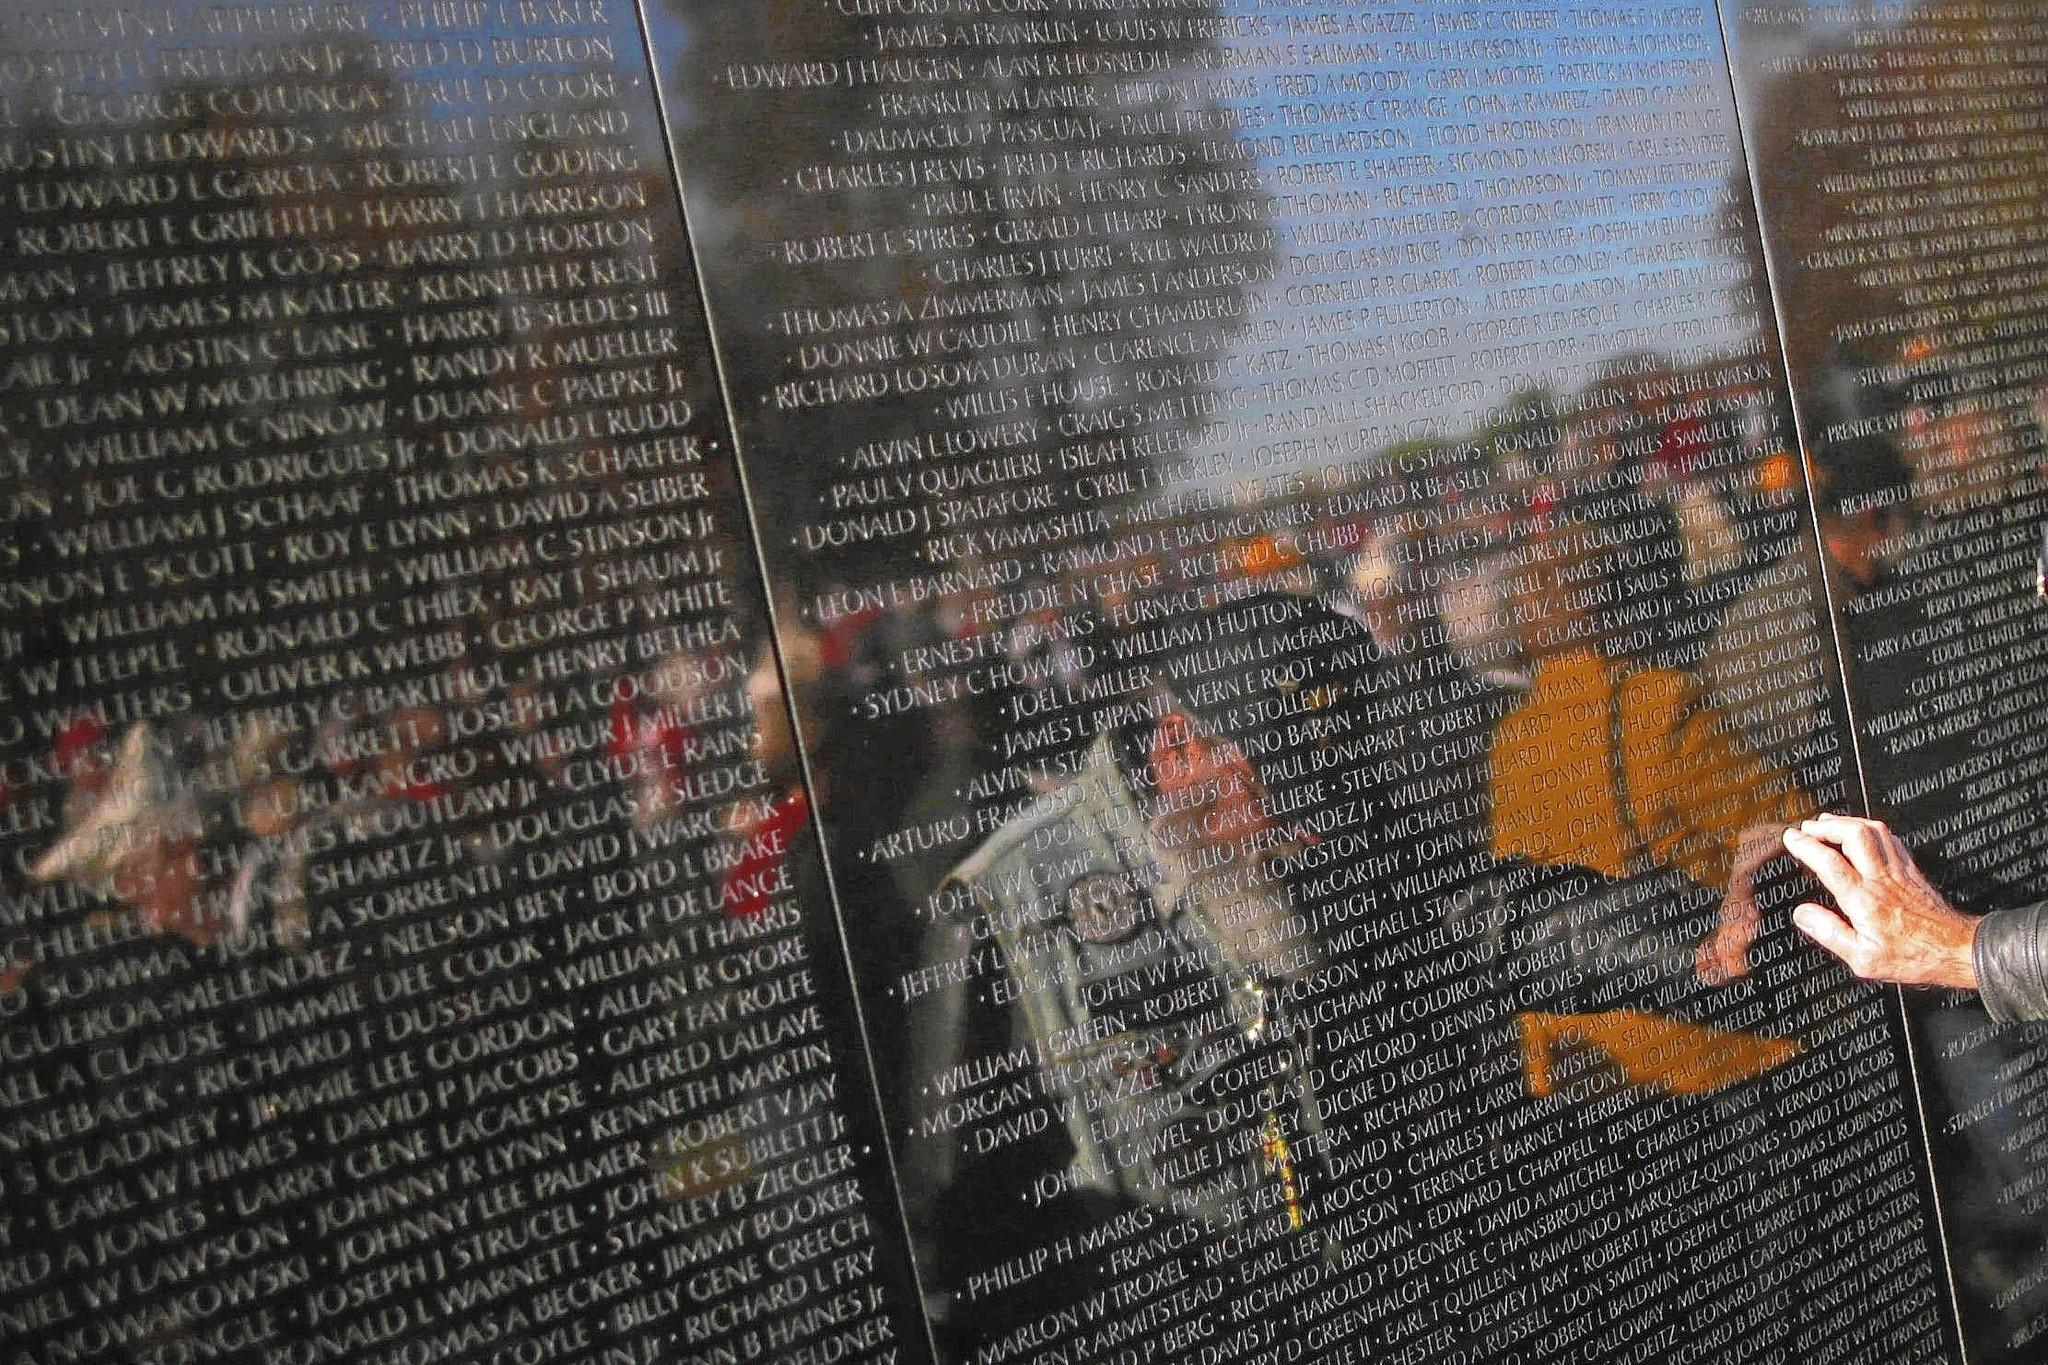 Tens of thousands of veterans and family members visit the somber and sobering Vietnam Veterans Memorial each year in Washington, D.C.